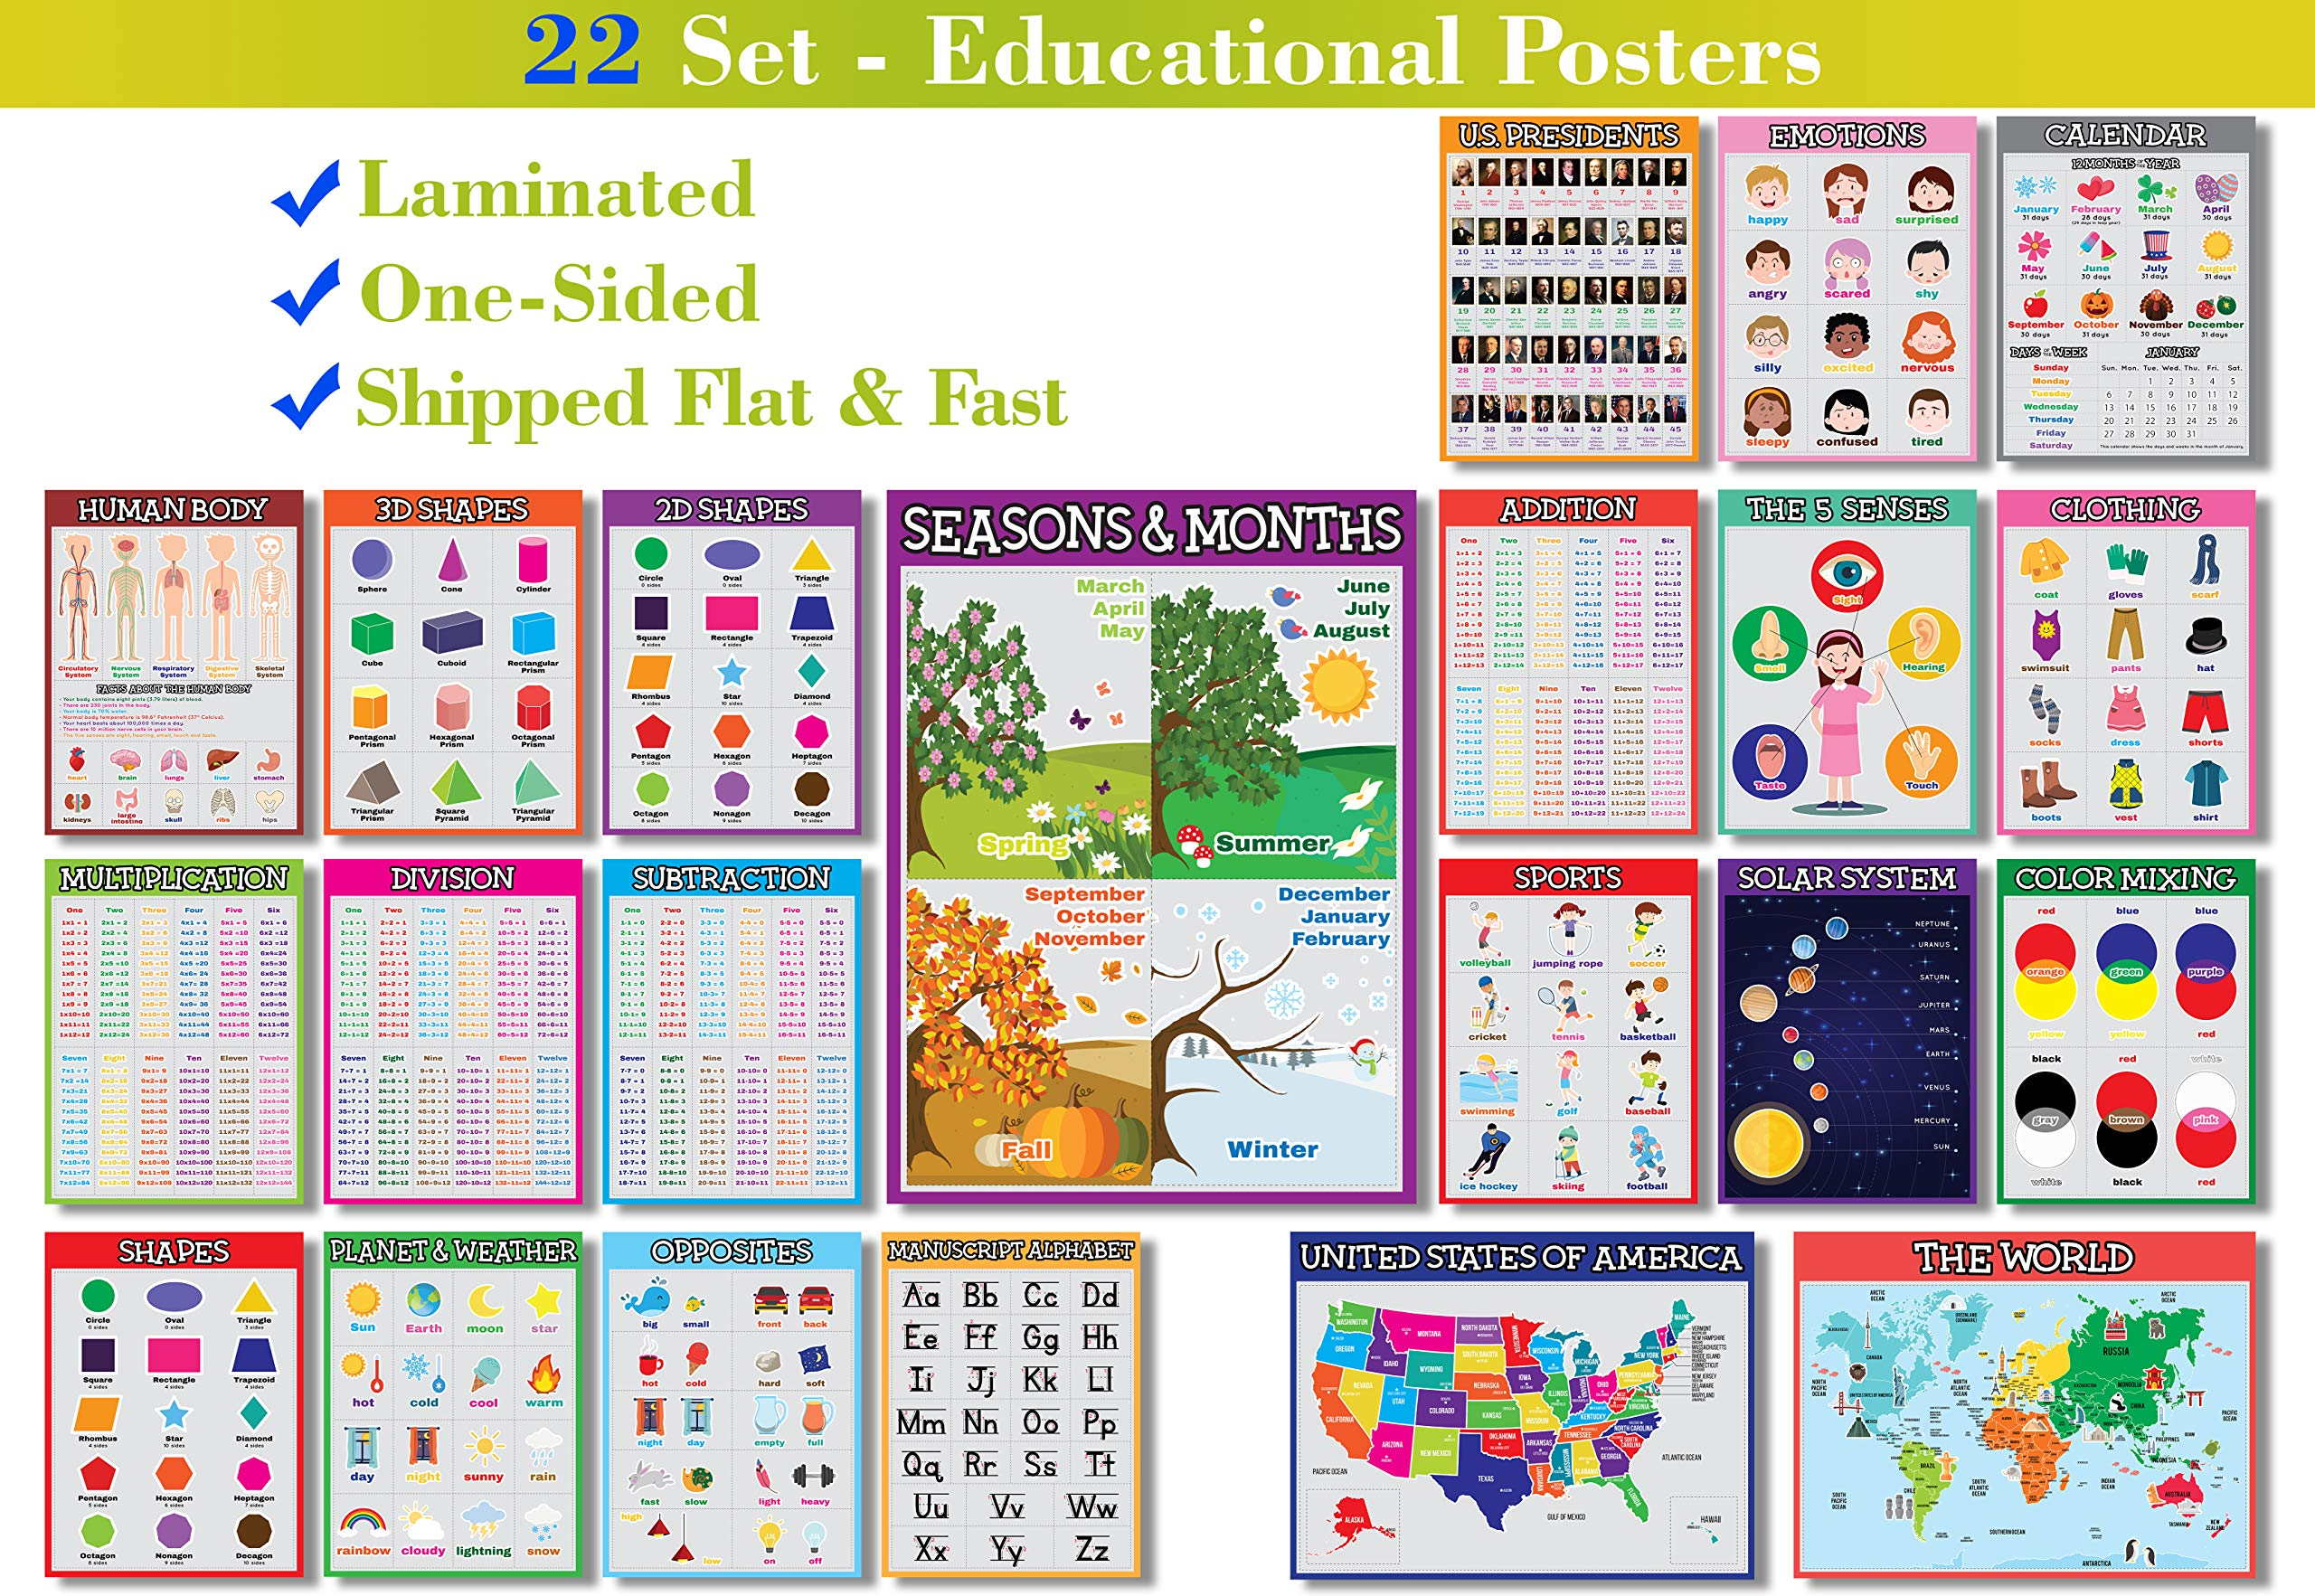 22 Set - We Ship Flat - Laminated Front Only - Educational Posters for Preschoolers, Toddlers, Kids, Kindergarten Classrooms (Laminated - English- One-Sided - 13 X 19 Inches - V1)